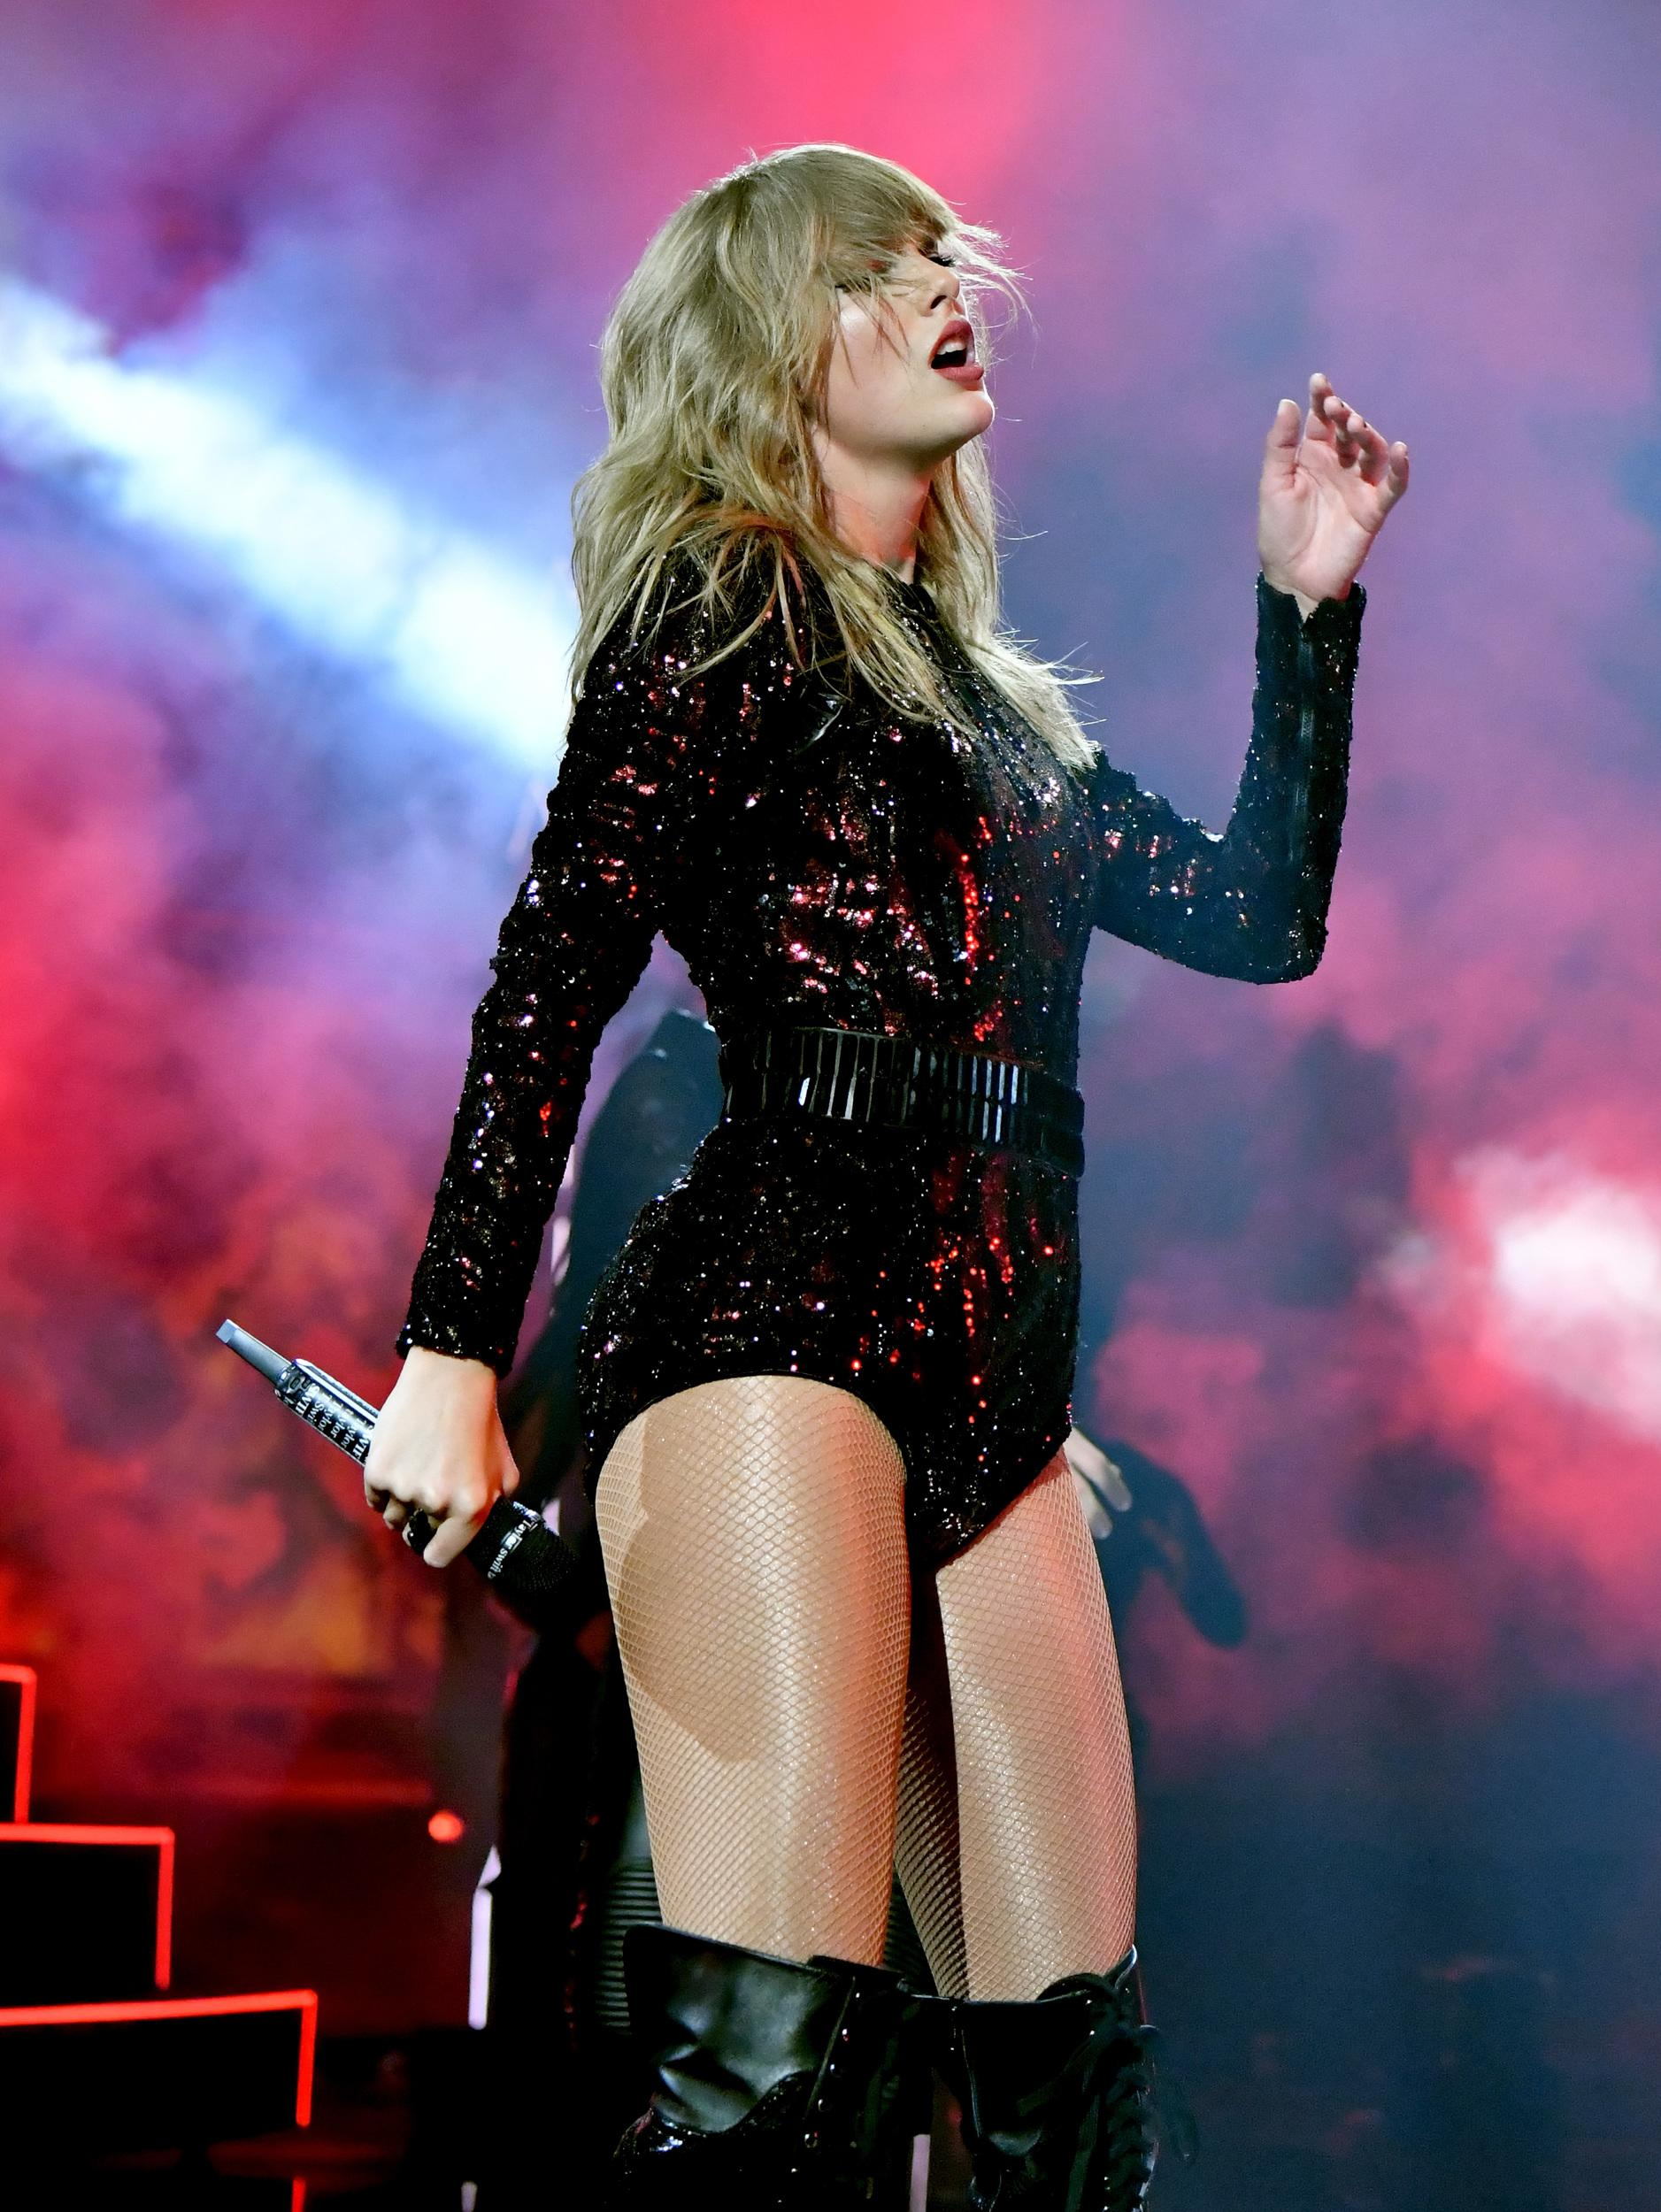 LOS ANGELES, CA - OCTOBER 09:  Taylor Swift performs onstage during the 2018 American Music Awards at Microsoft Theater on October 9, 2018 in Los Angeles, California.  (Photo by Jeff Kravitz/AMA2018/FilmMagic For dcp ,)